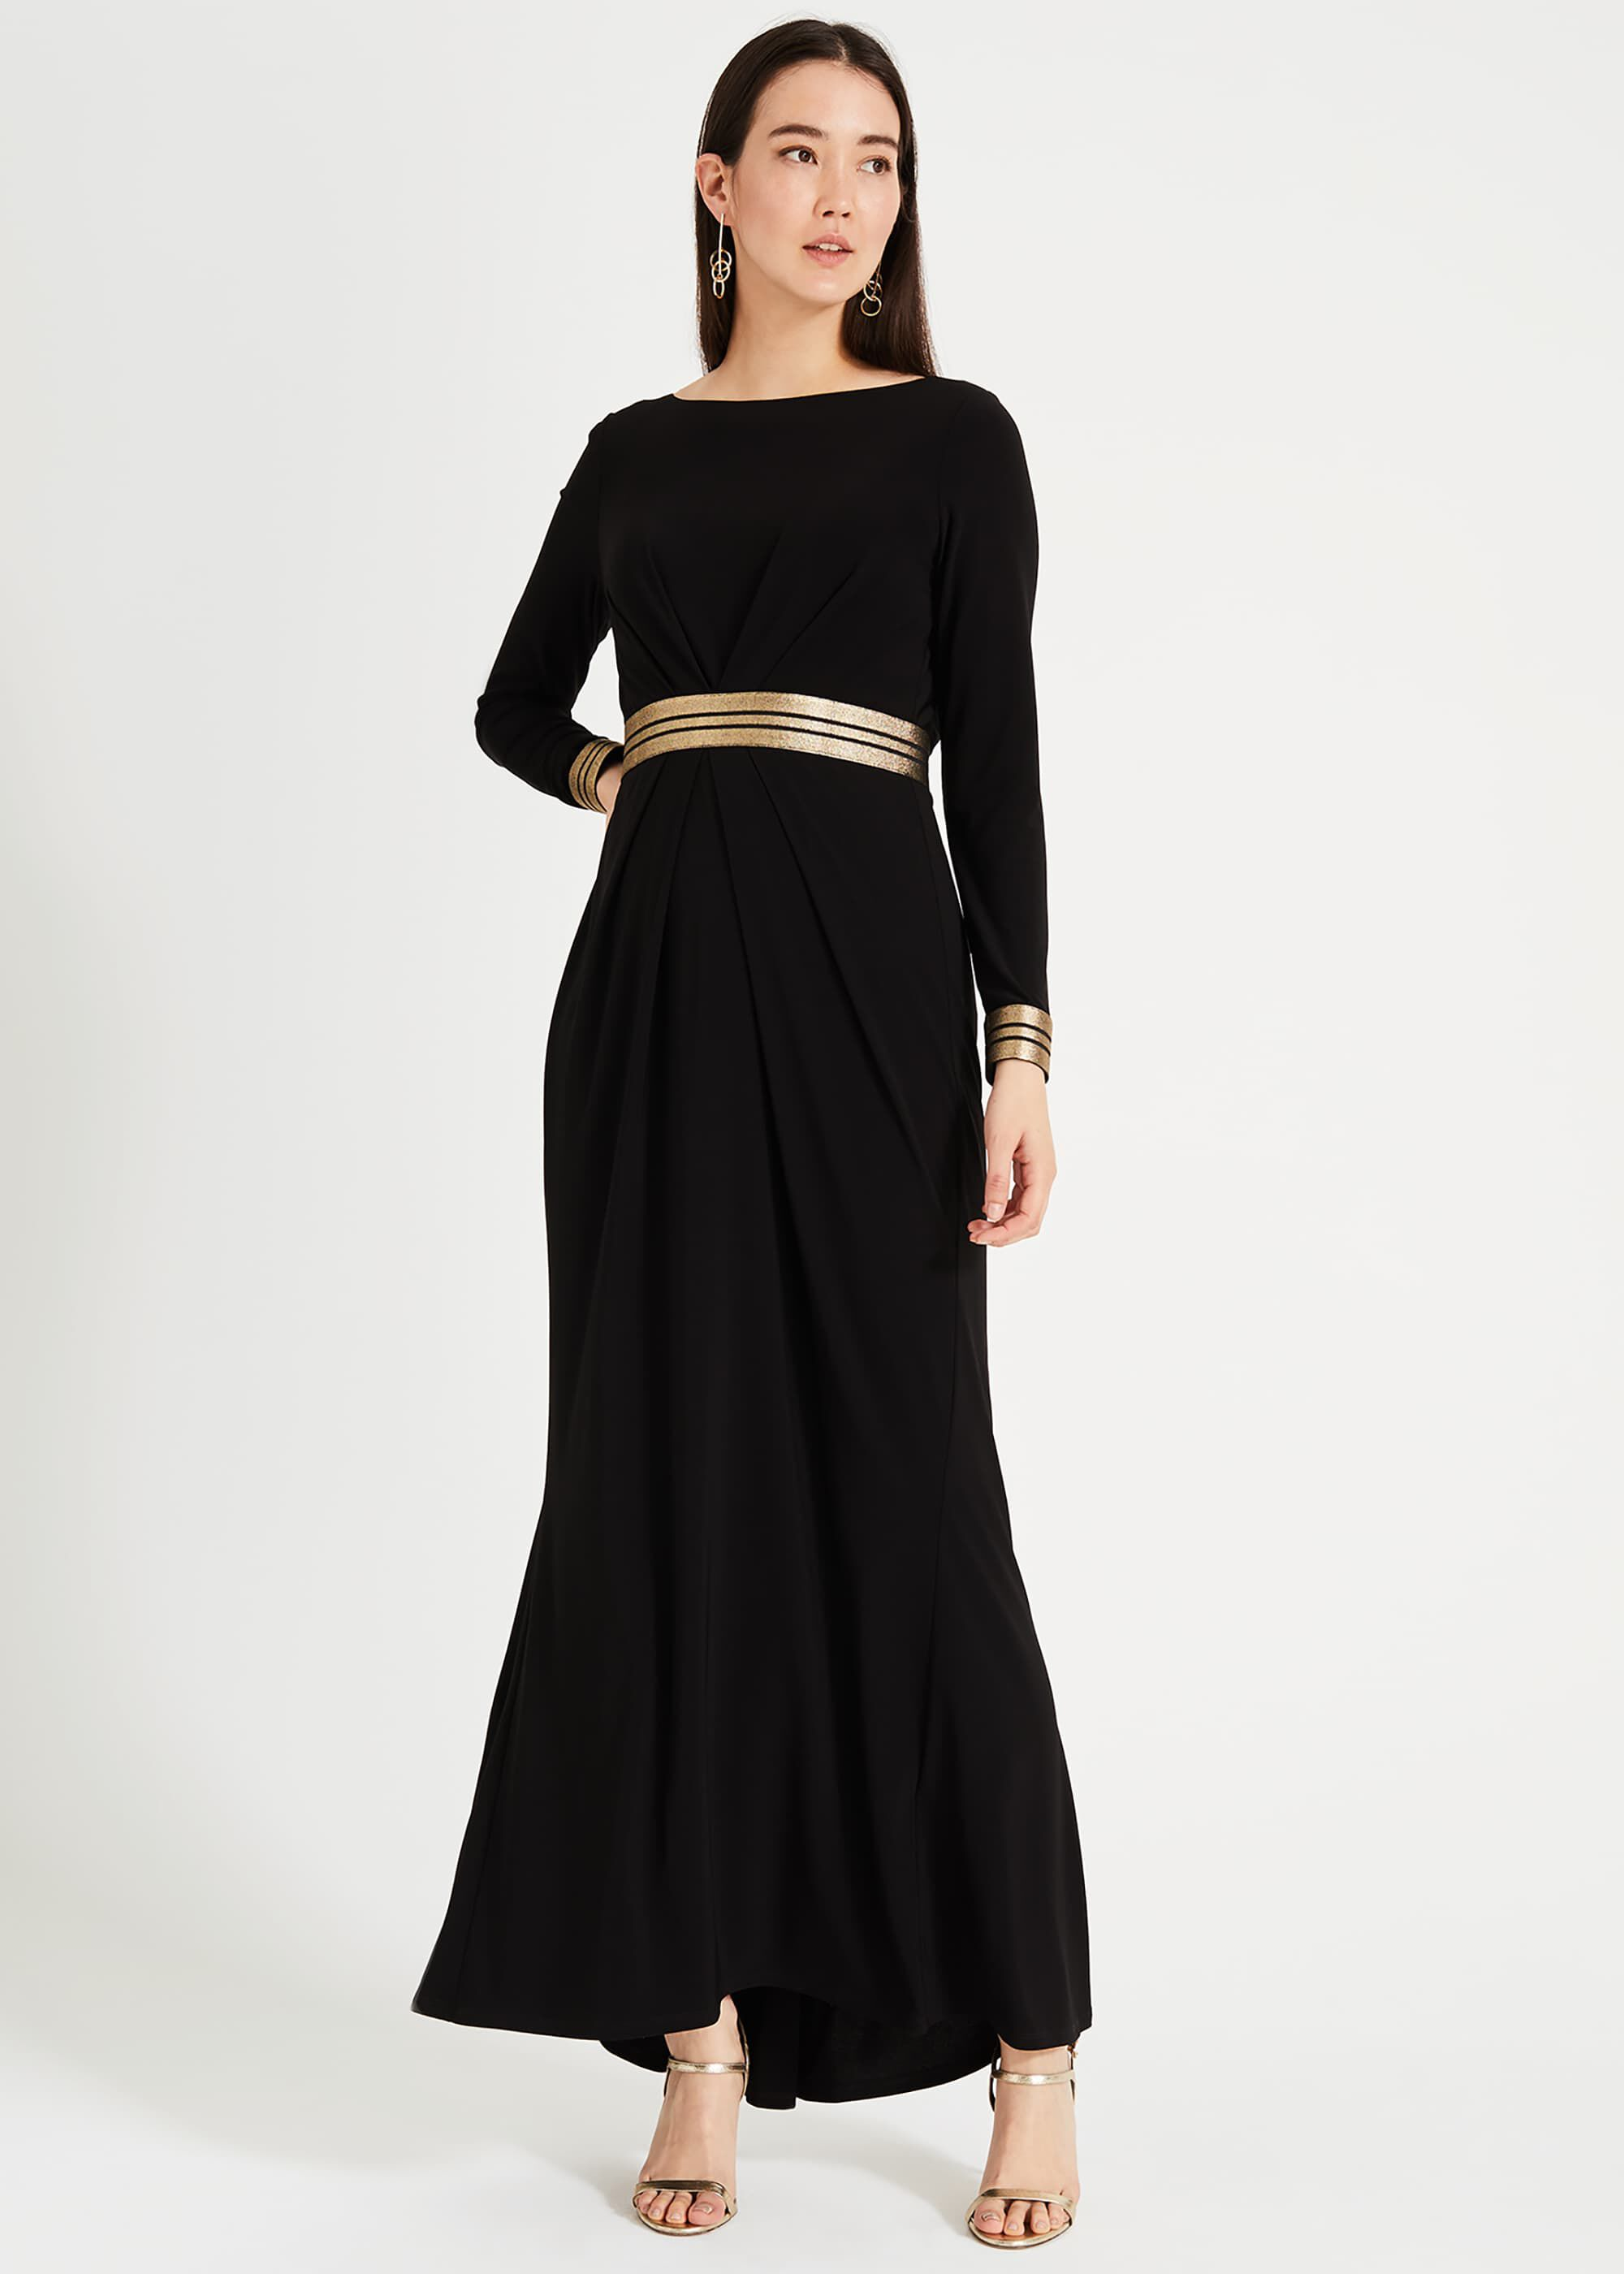 70s Prom, Formal, Evening, Party Dresses Phase Eight Faber Maxi Dress Black Maxi Occasion Dress £120.00 AT vintagedancer.com